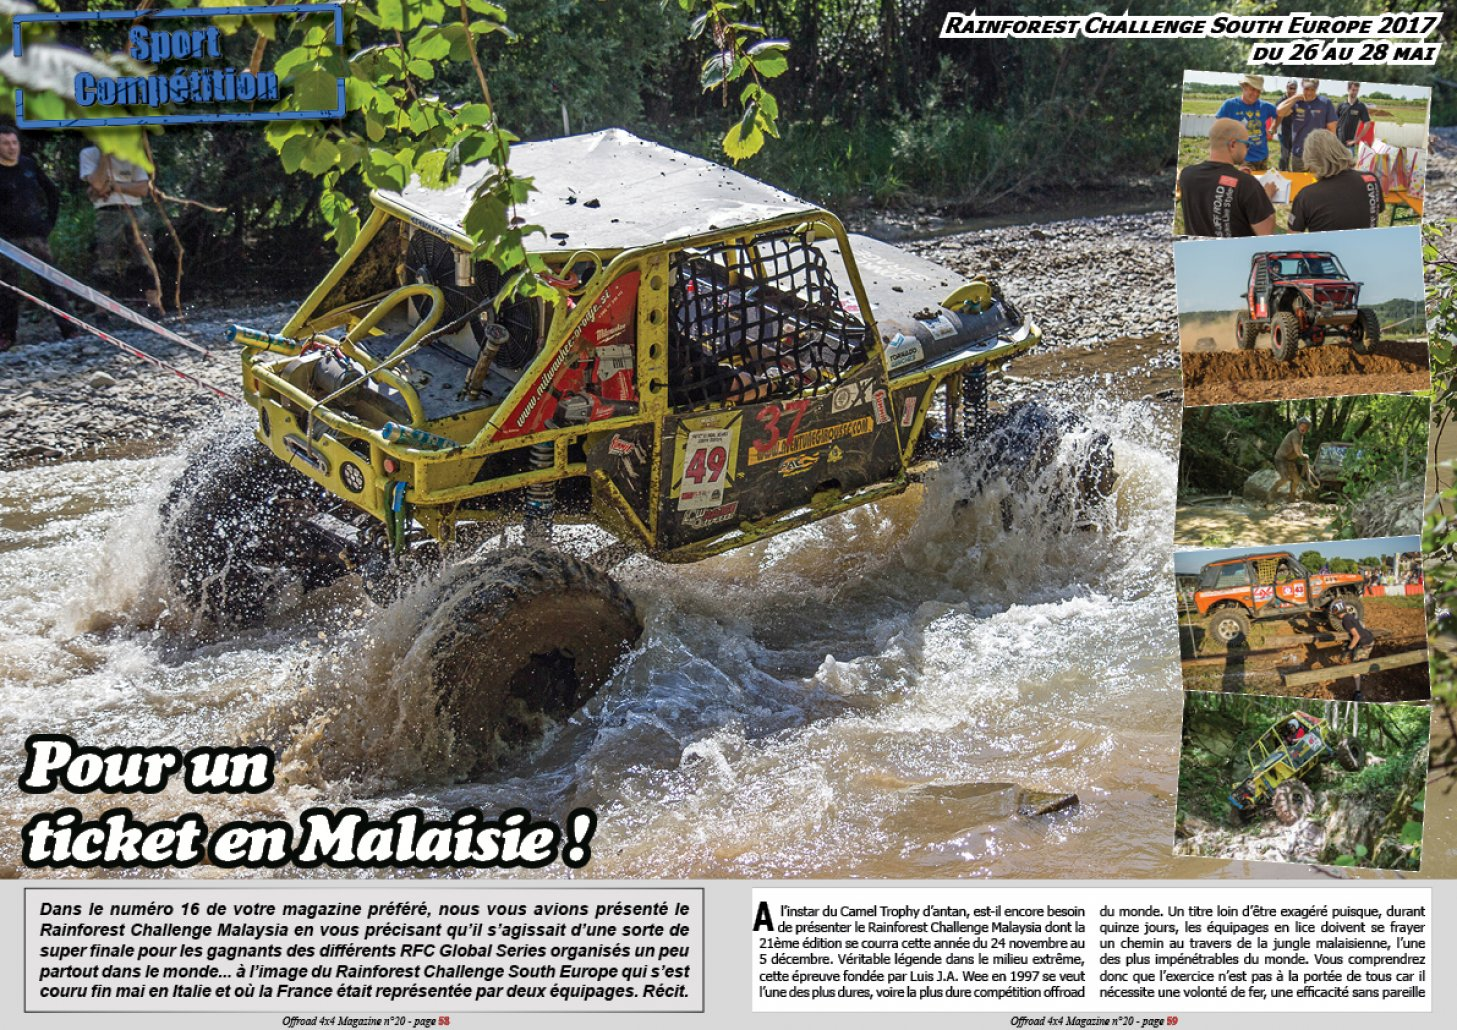 Le Rainforest Challenge South Europe 2017